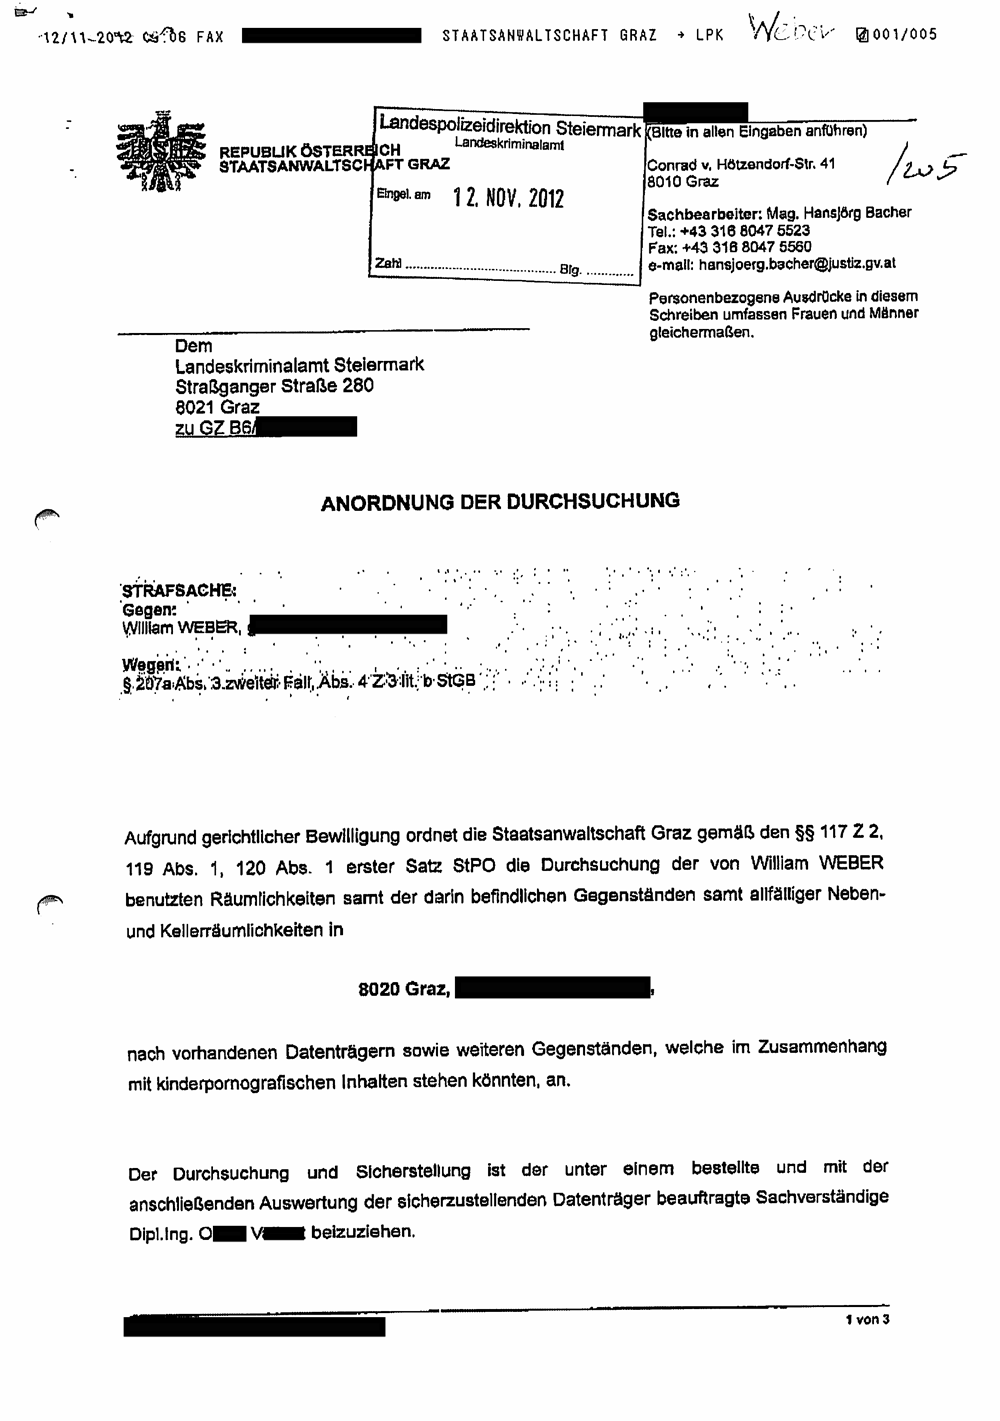 A court order served on Austrian Tor operator William Weber.